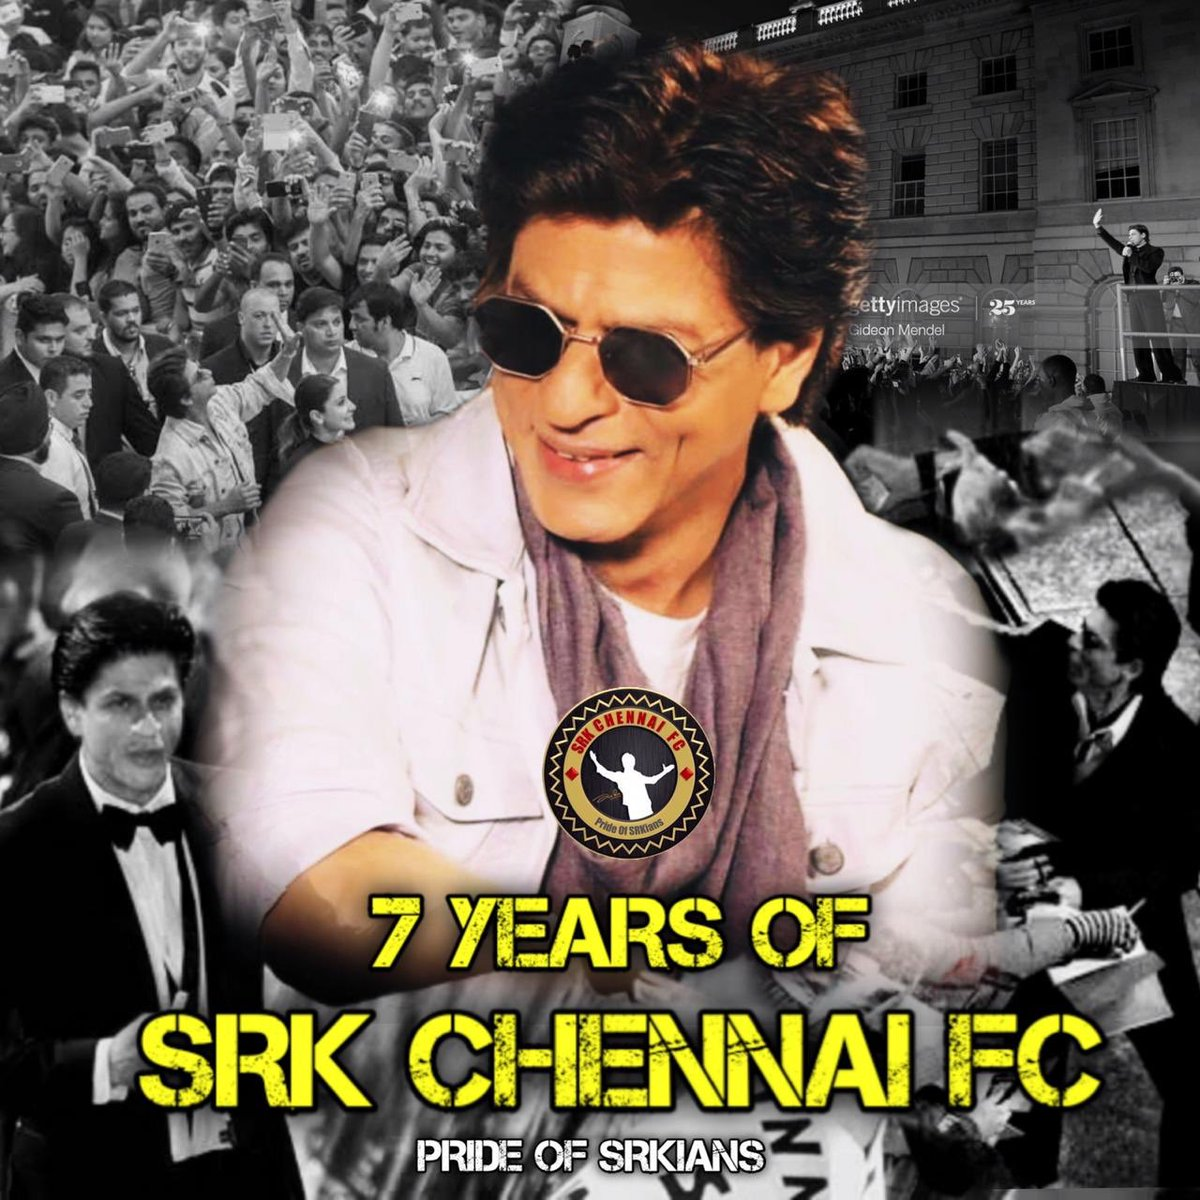 Its been a lovely #7YearsOfSRKCFC journey!❤️  Thank you so much @iamsrk sir for ur love, support & blessing always! You are our world and you mean everything to us! We love u unconditionally✨  Thank u to SRK fans, our SRKCFC memebers for ur love, trust & support! It means a lot. https://t.co/GNXqFPSaZl